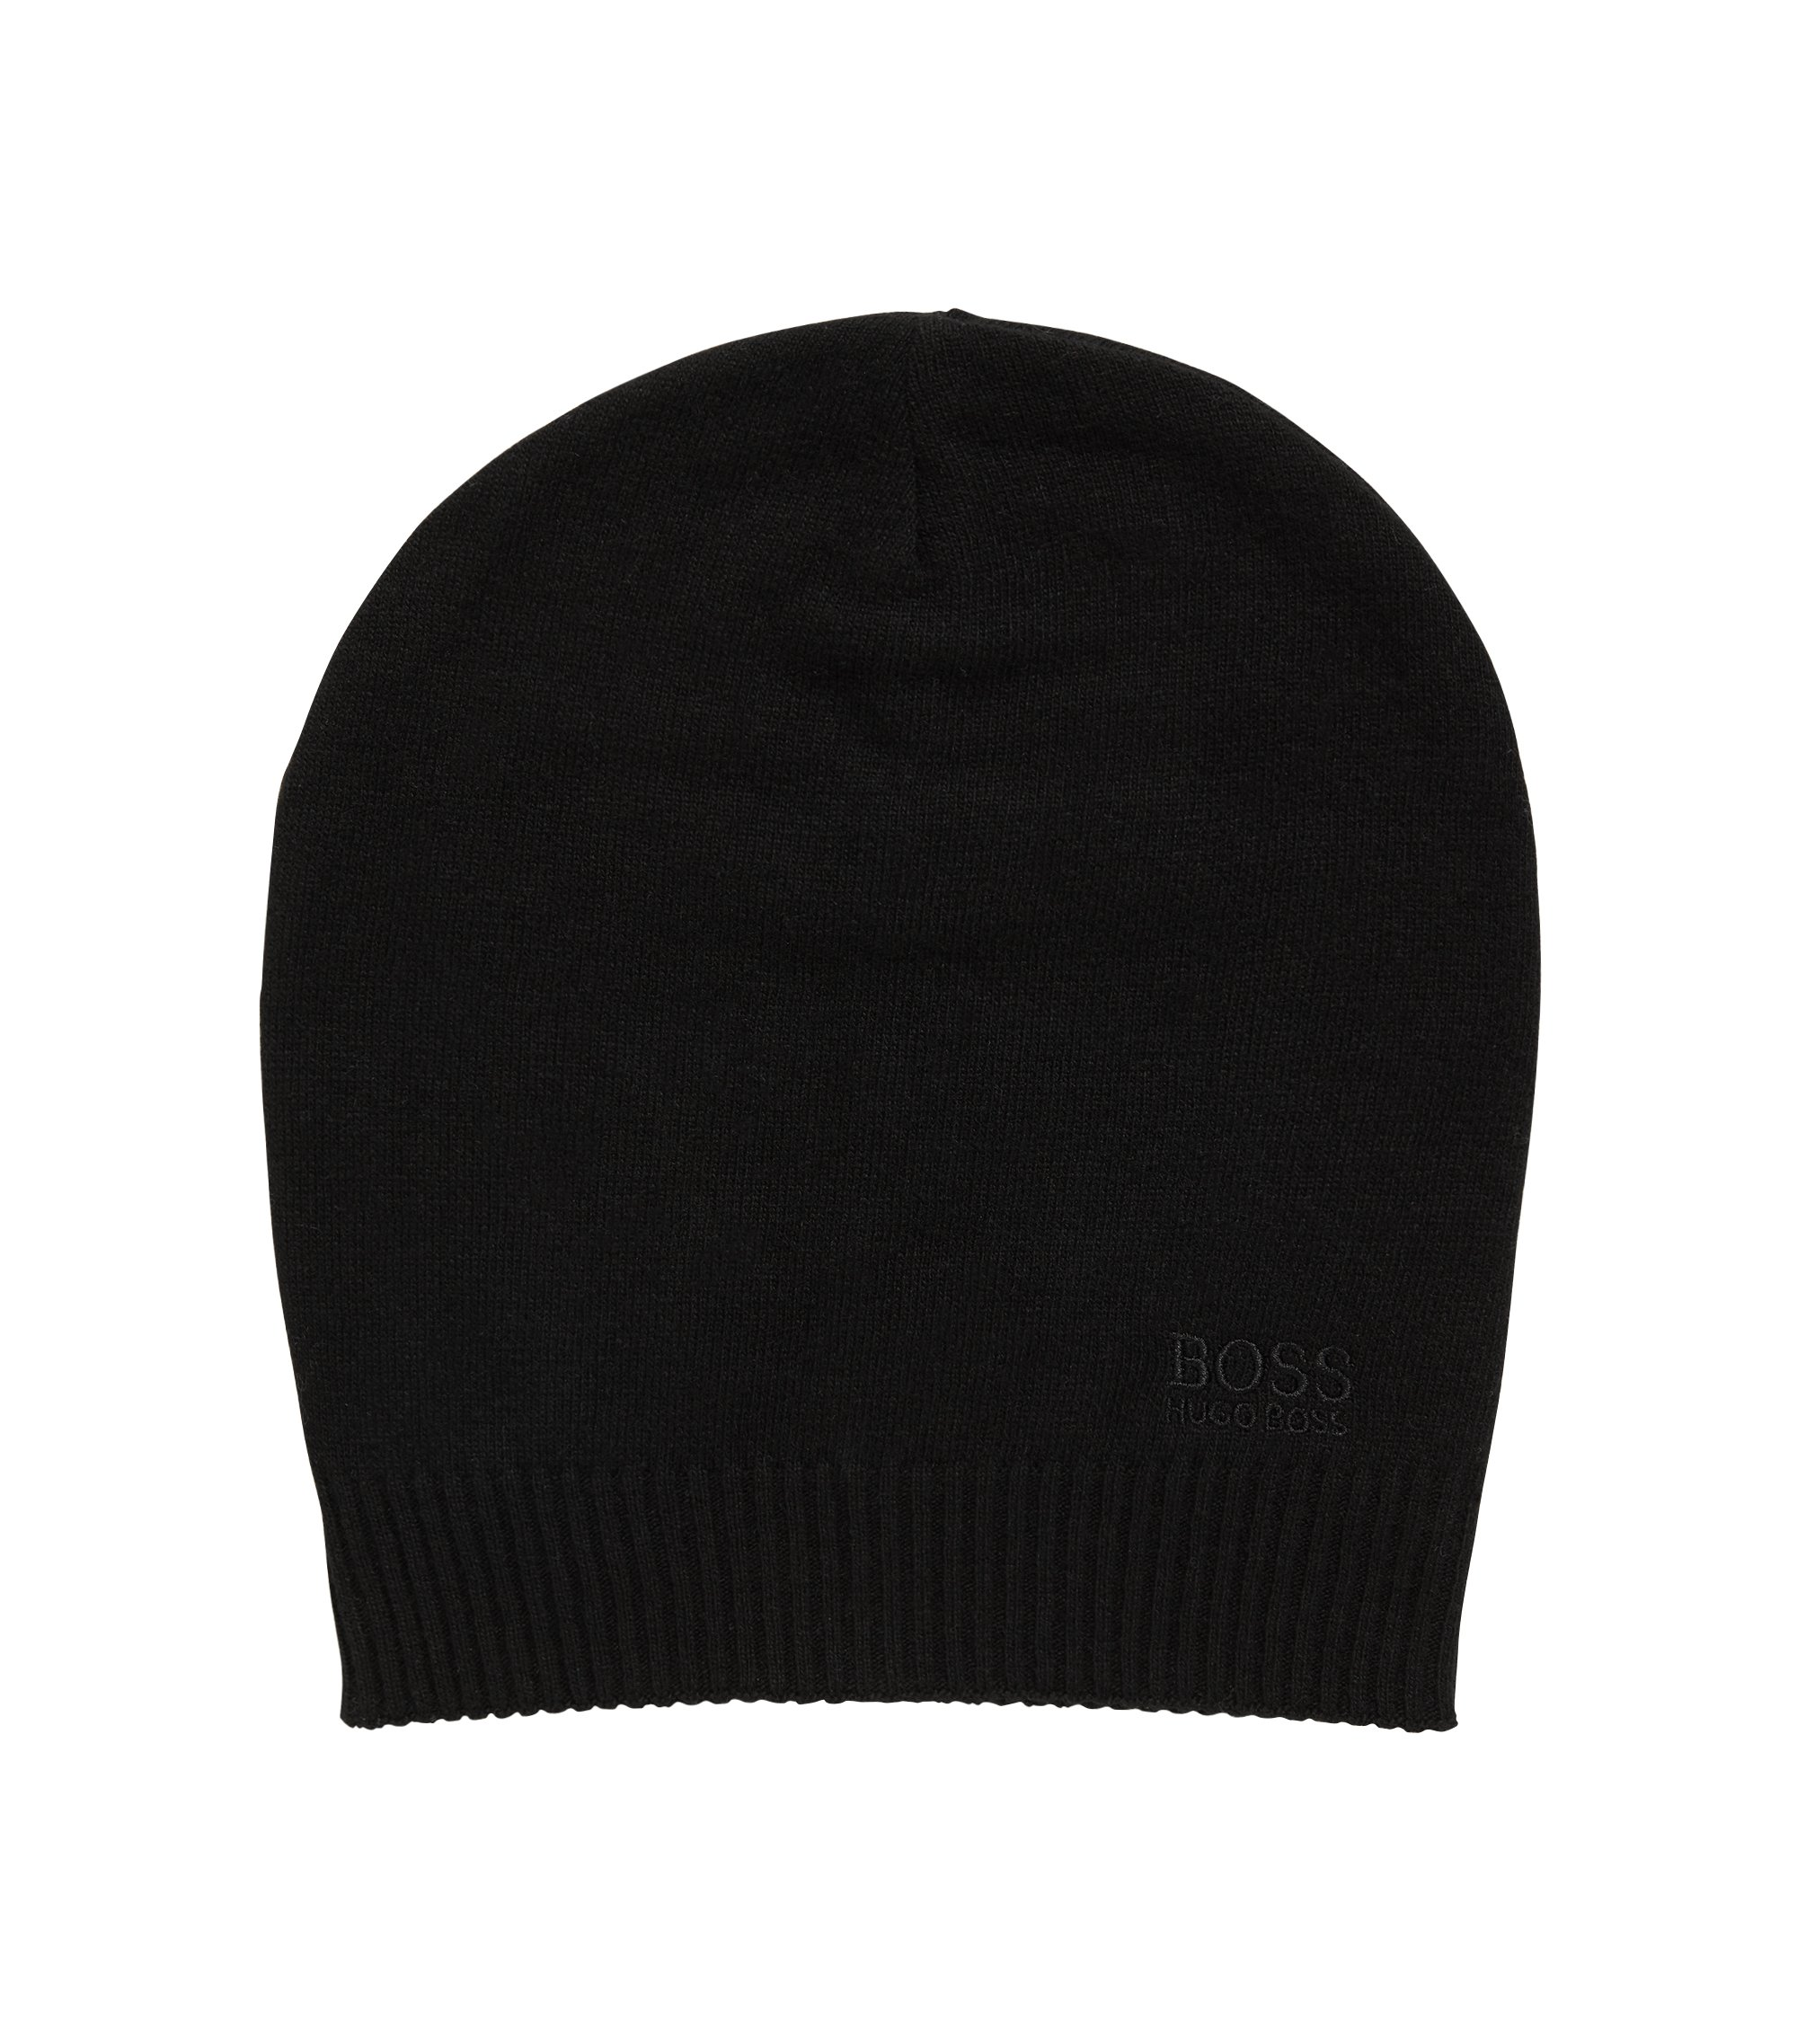 Knitted beanie hat with tonal logo, Black